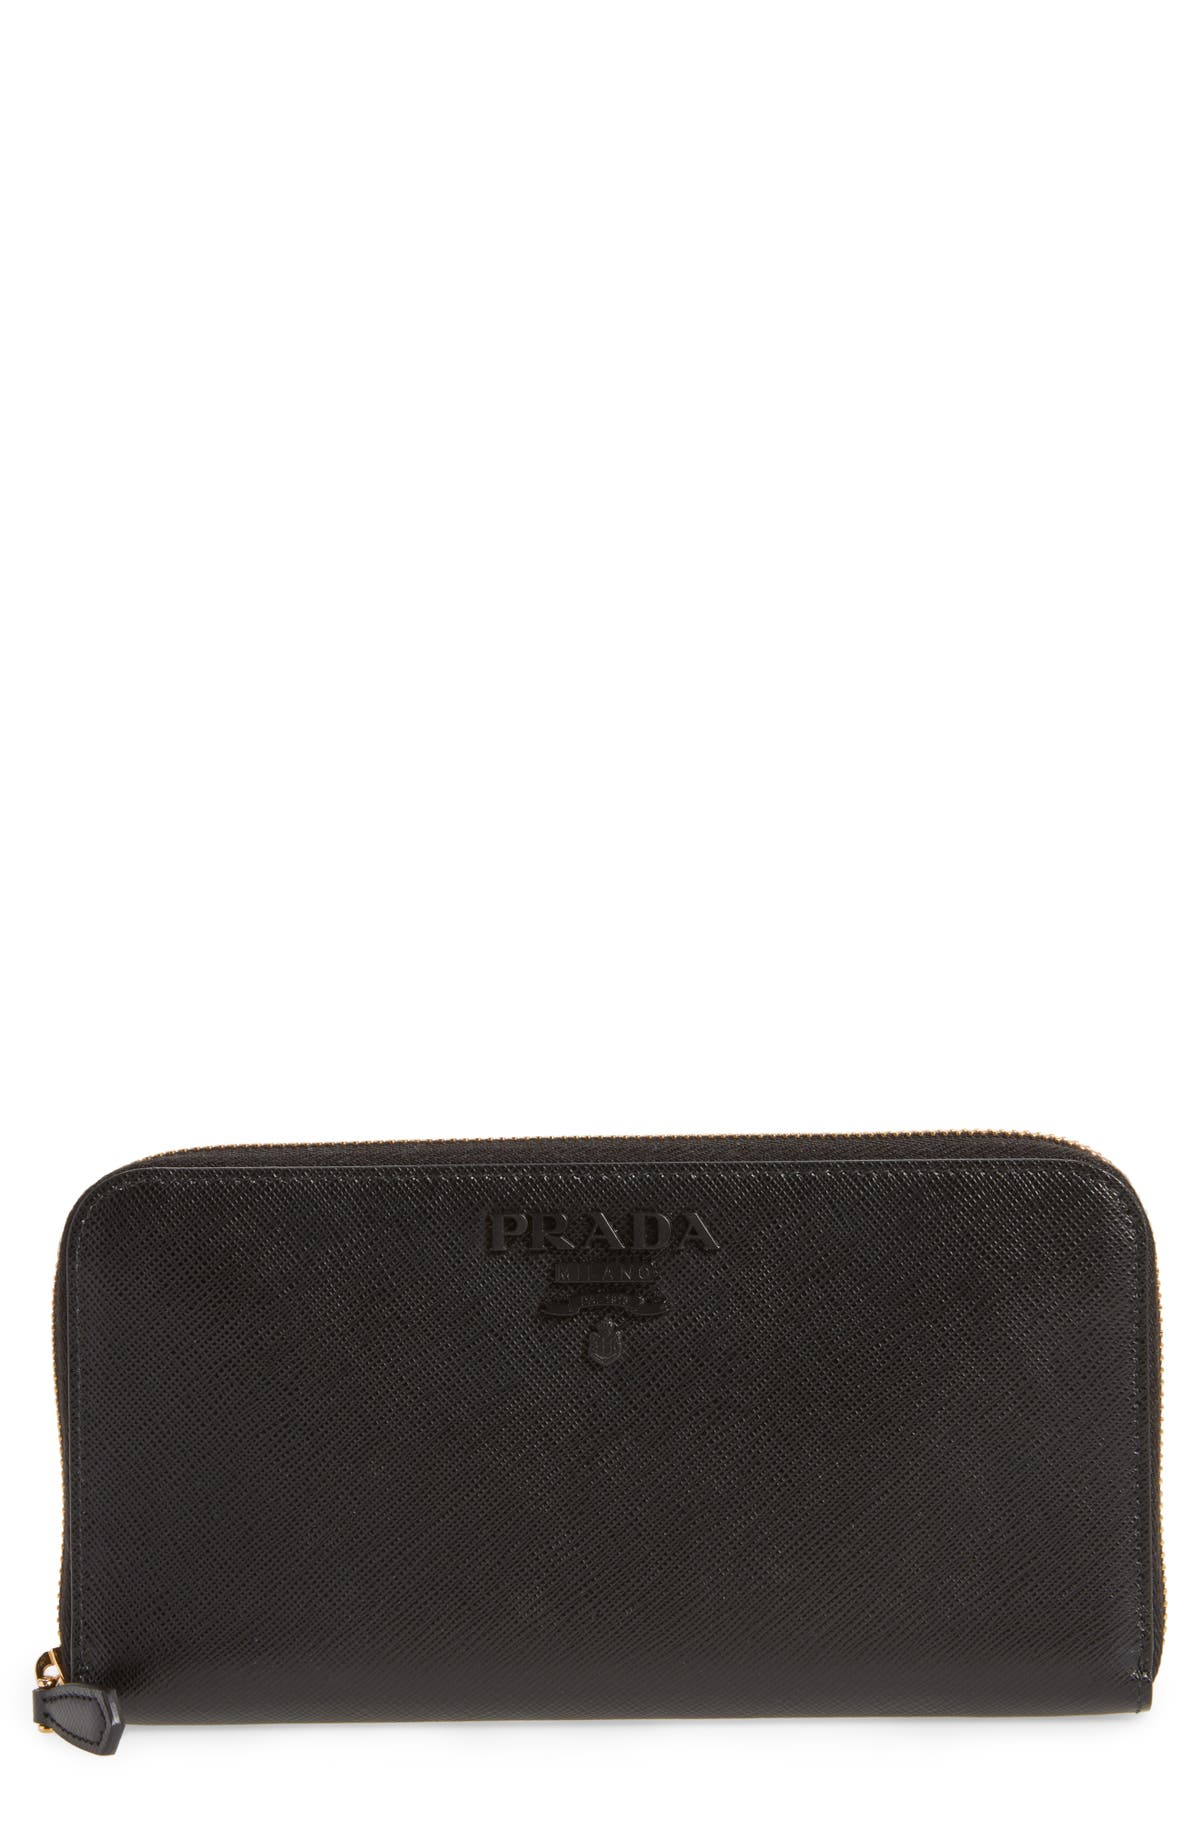 a7949ab6db0e Prada Monochrome Zip Around Wallet | Nordstrom